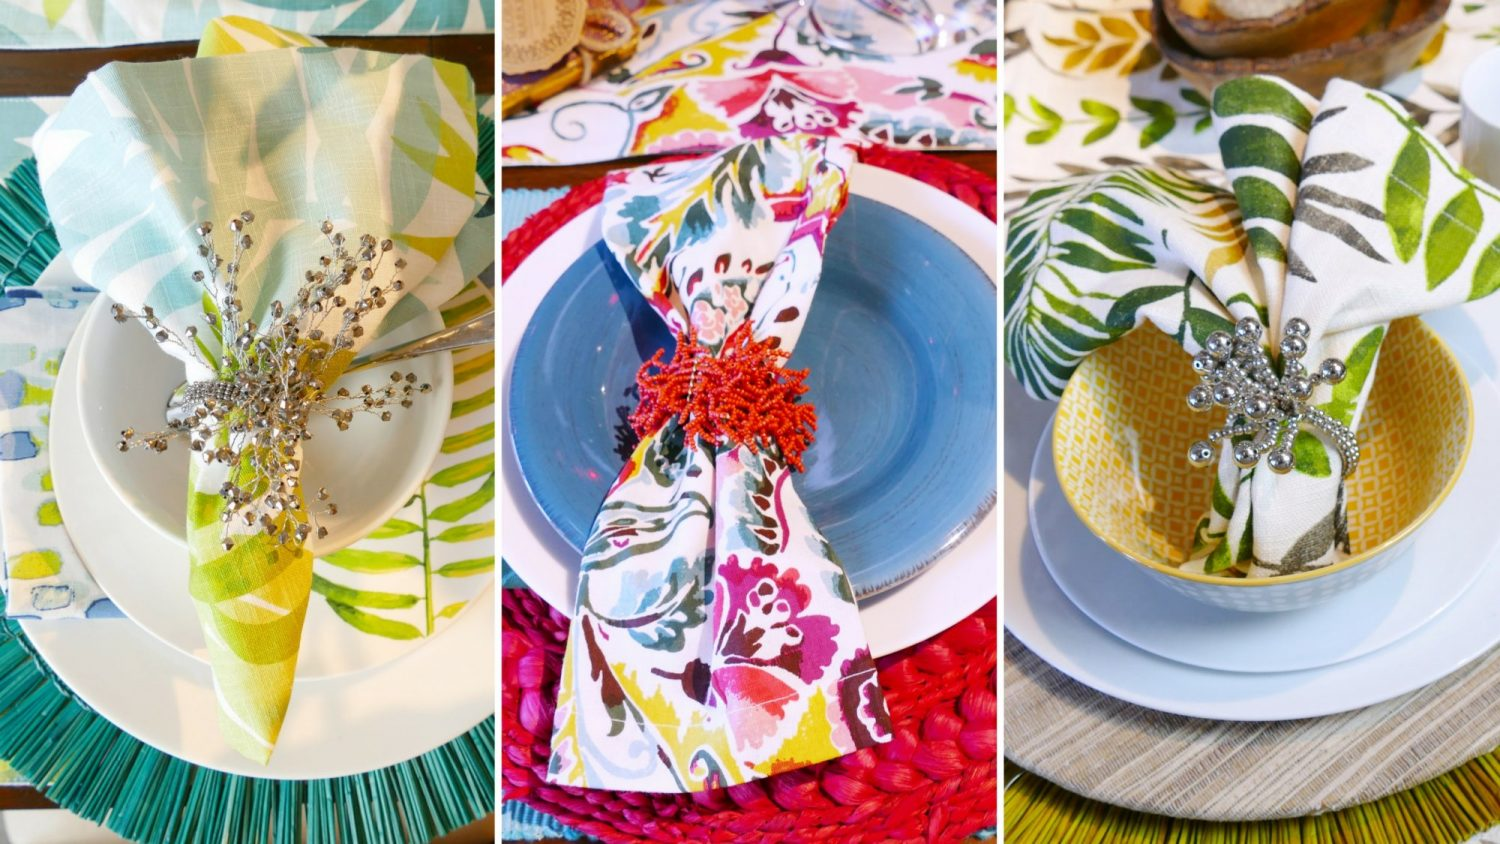 3 Inspiring Ways To Add Pizzazz To Your Dining Room